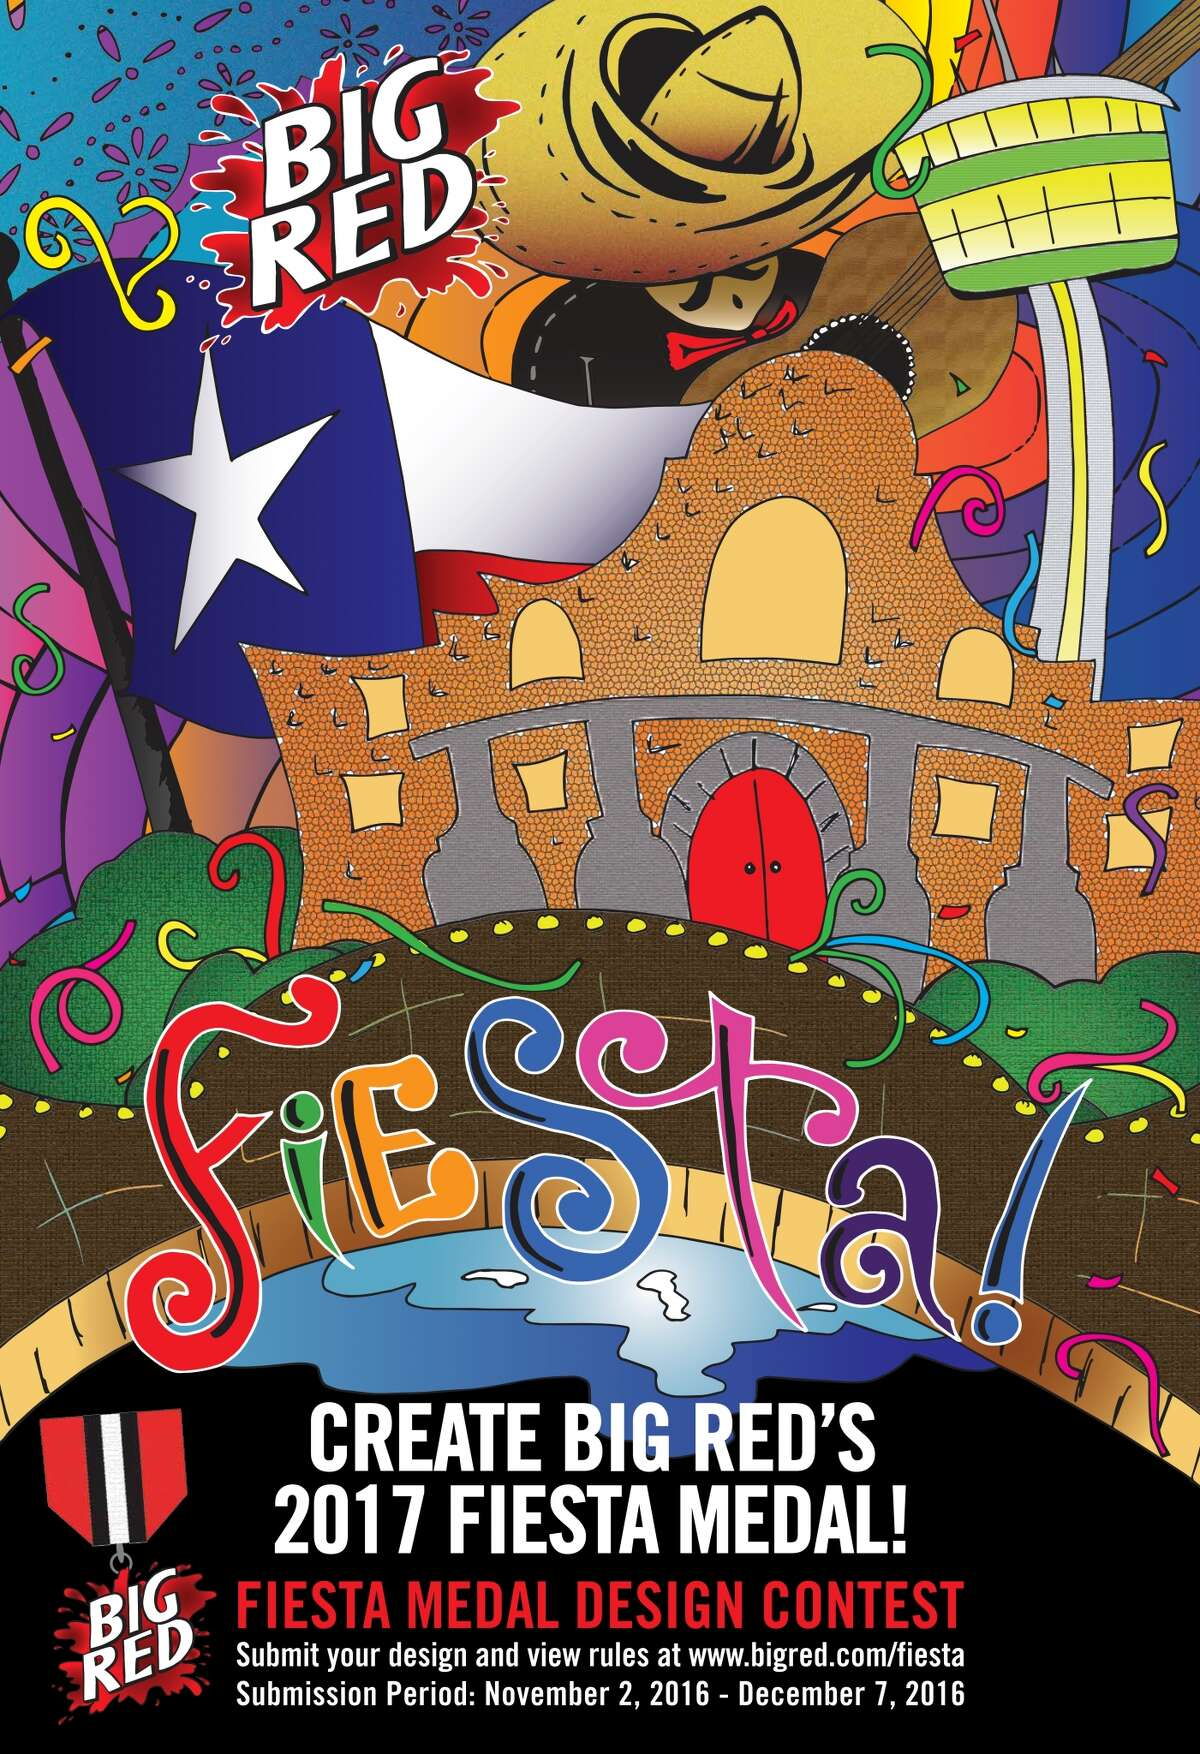 Big Red has launched a contest allowing fans to create the company's 2017 Fiesta medal.